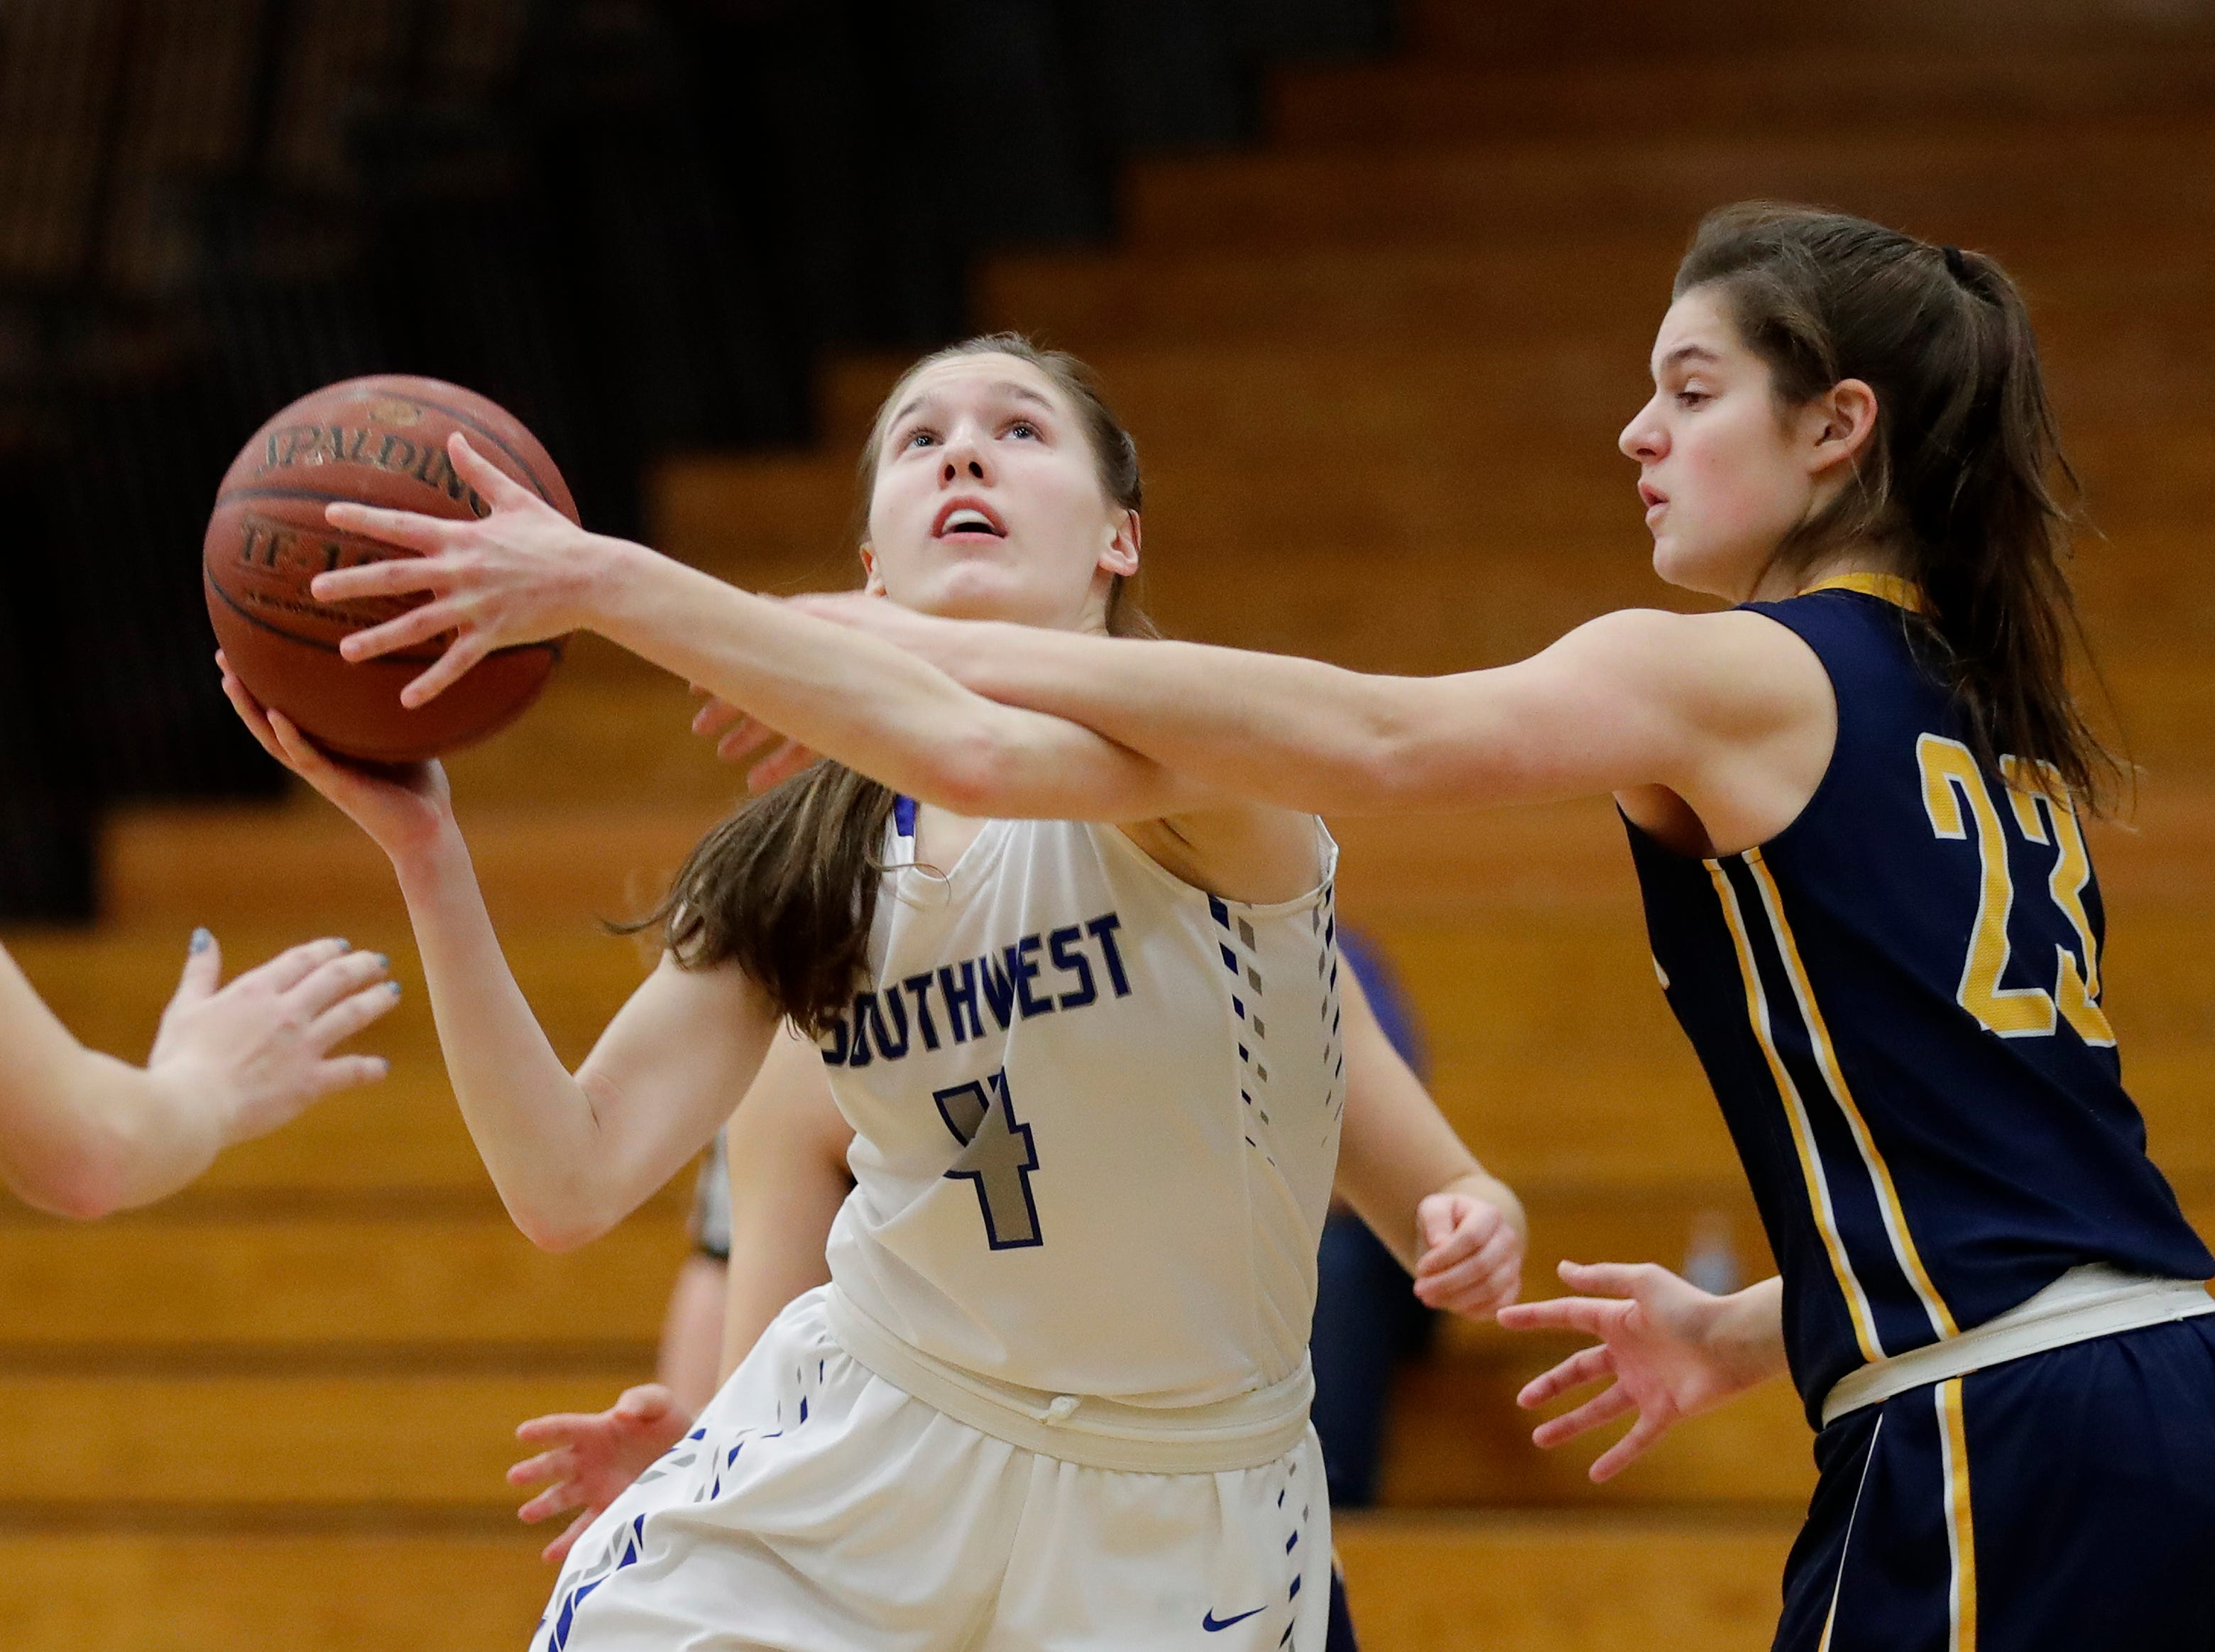 Green Bay Southwest's Caitlyn Thiel (4) shoots against Sheboygan North's Meredith Opie (23) in a girls basketball game at Southwest High School on Tuesday, February 5, 2019 in Green Bay, Wis.